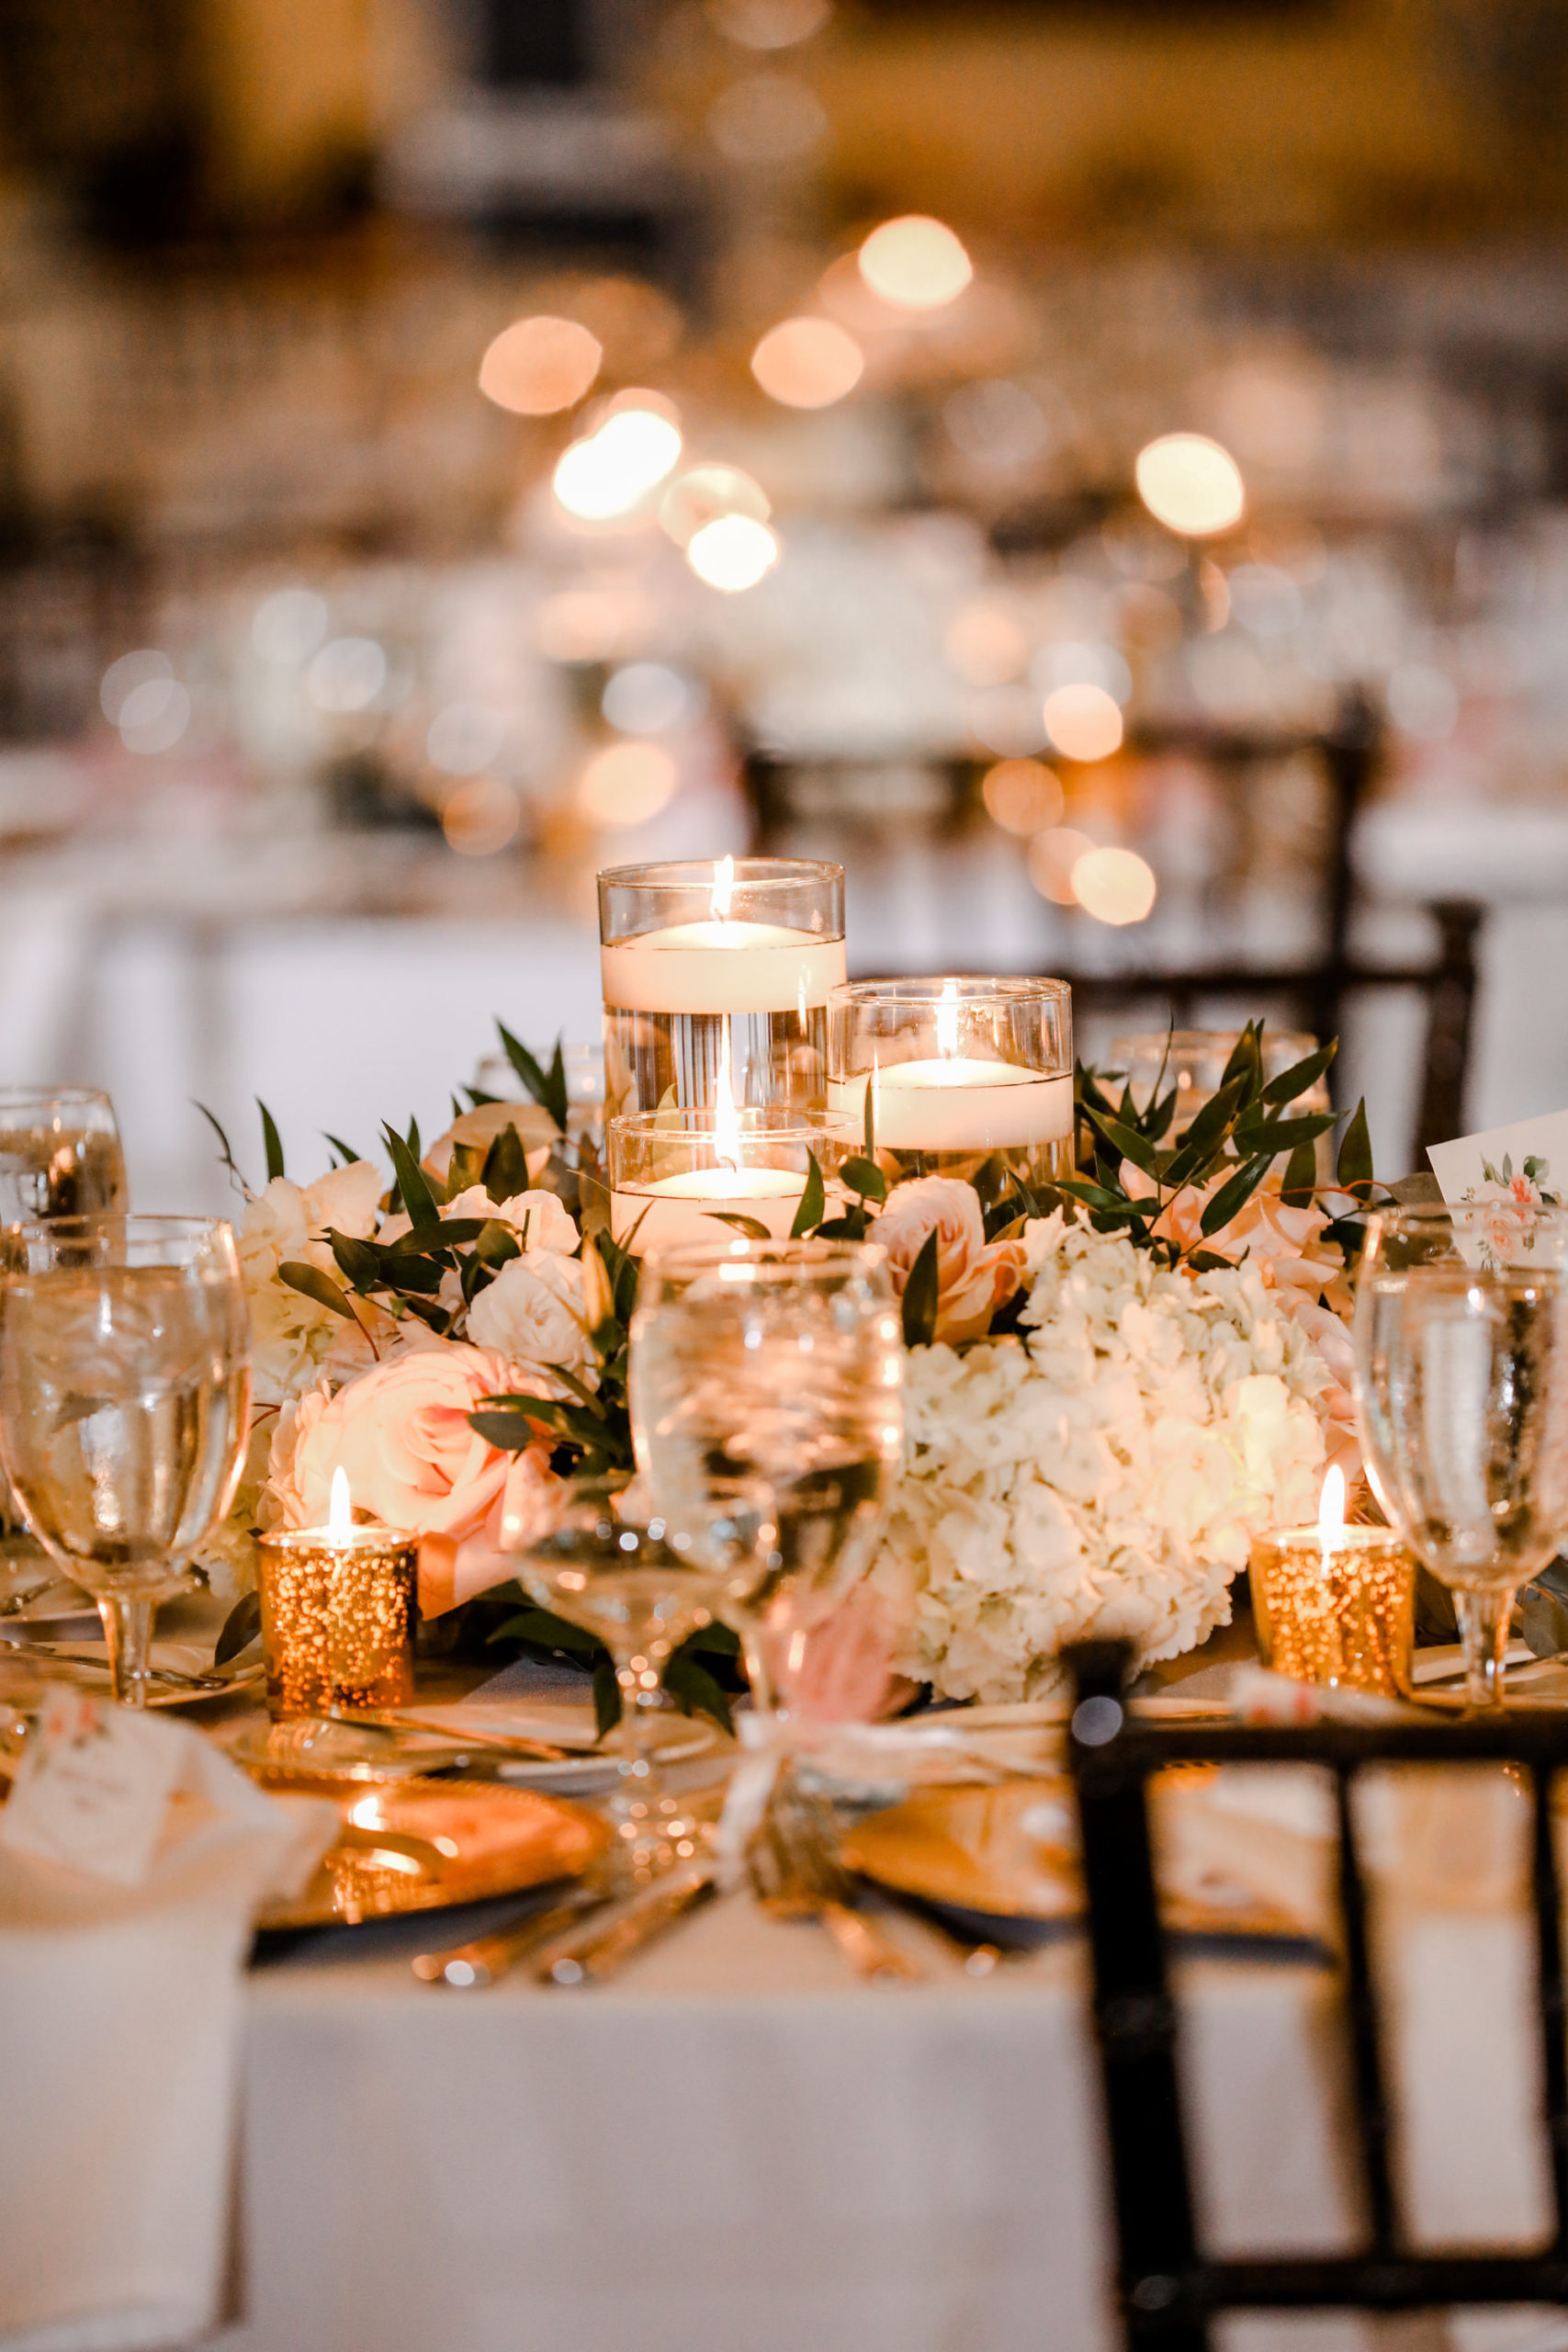 Tampa Wedding Venue Avila Golf & Country Club | Indoor Ballroom Reception with Chiavari Chairs and Chandeliers | White and Blush Dusty Rose | Low Floating Candle Centerpiece with Hydrangea Roses and Greenery